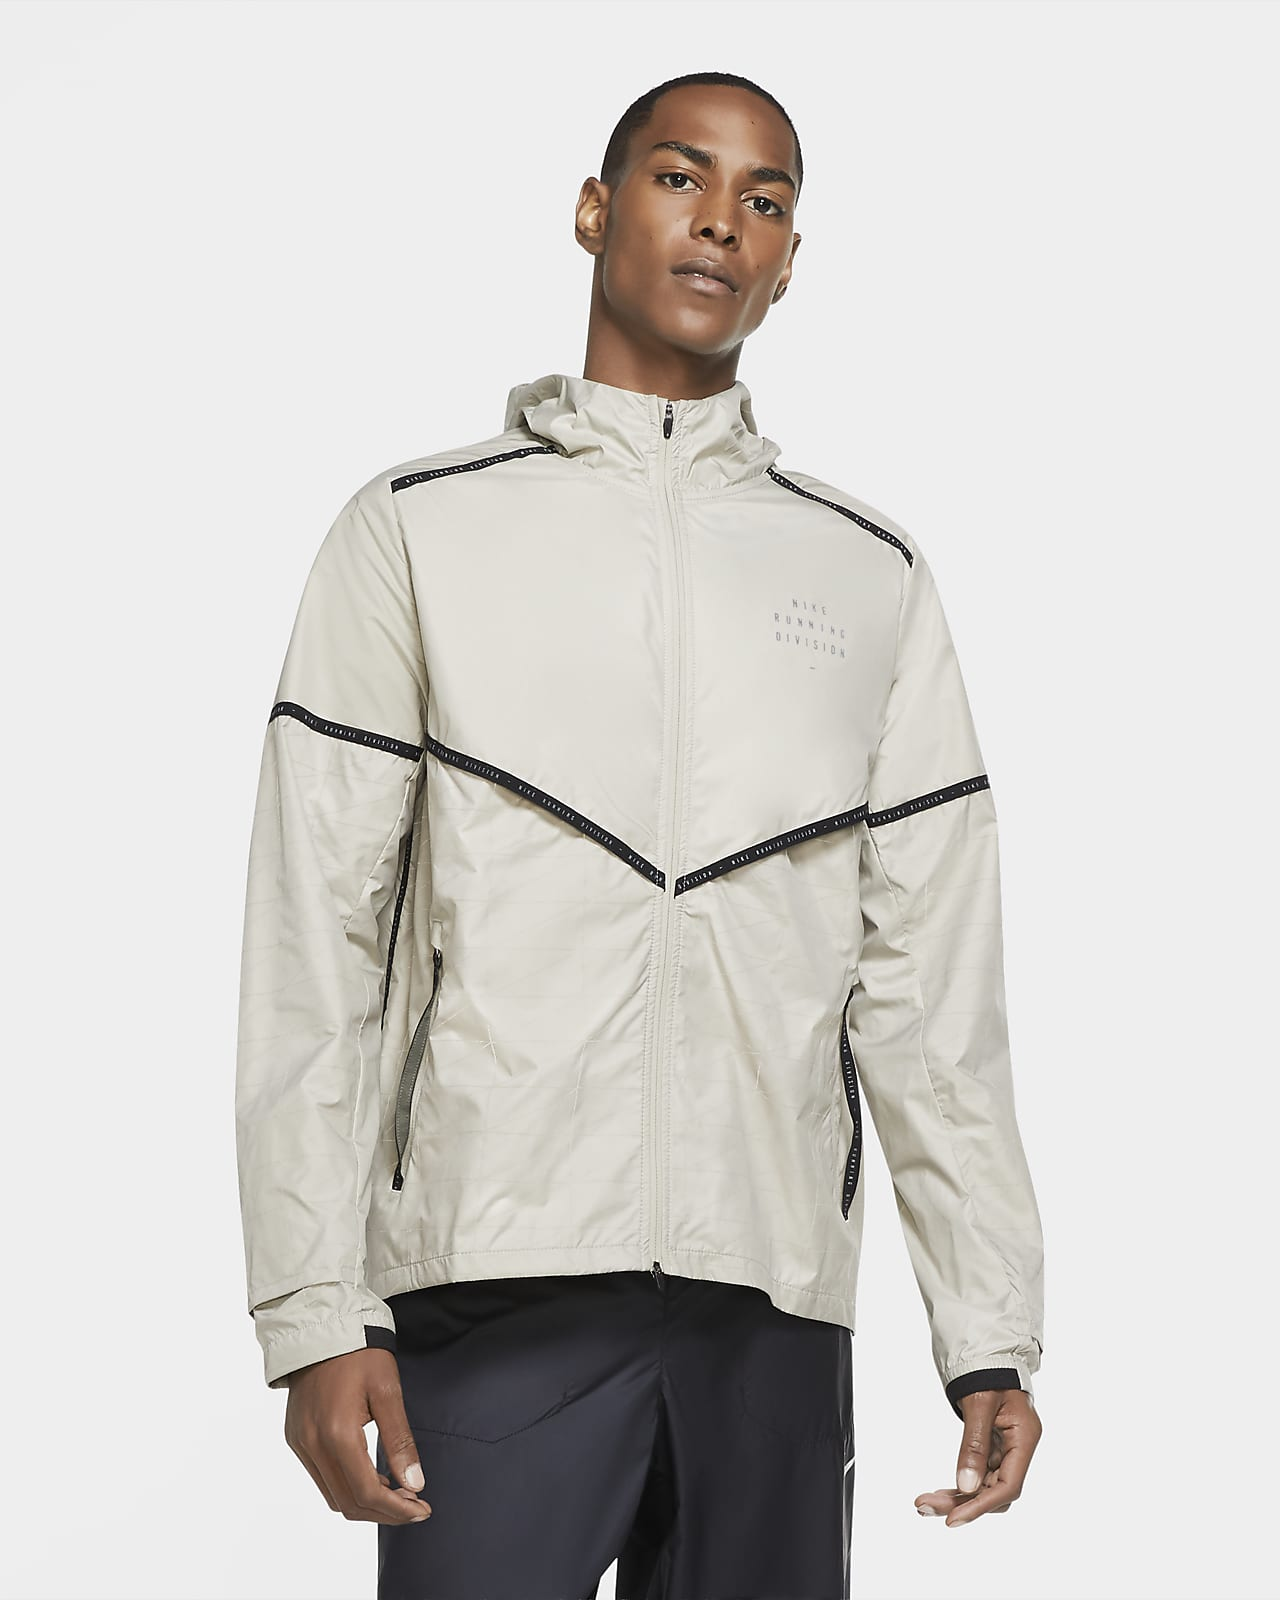 Nike Flash Run Division Men's Running Jacket